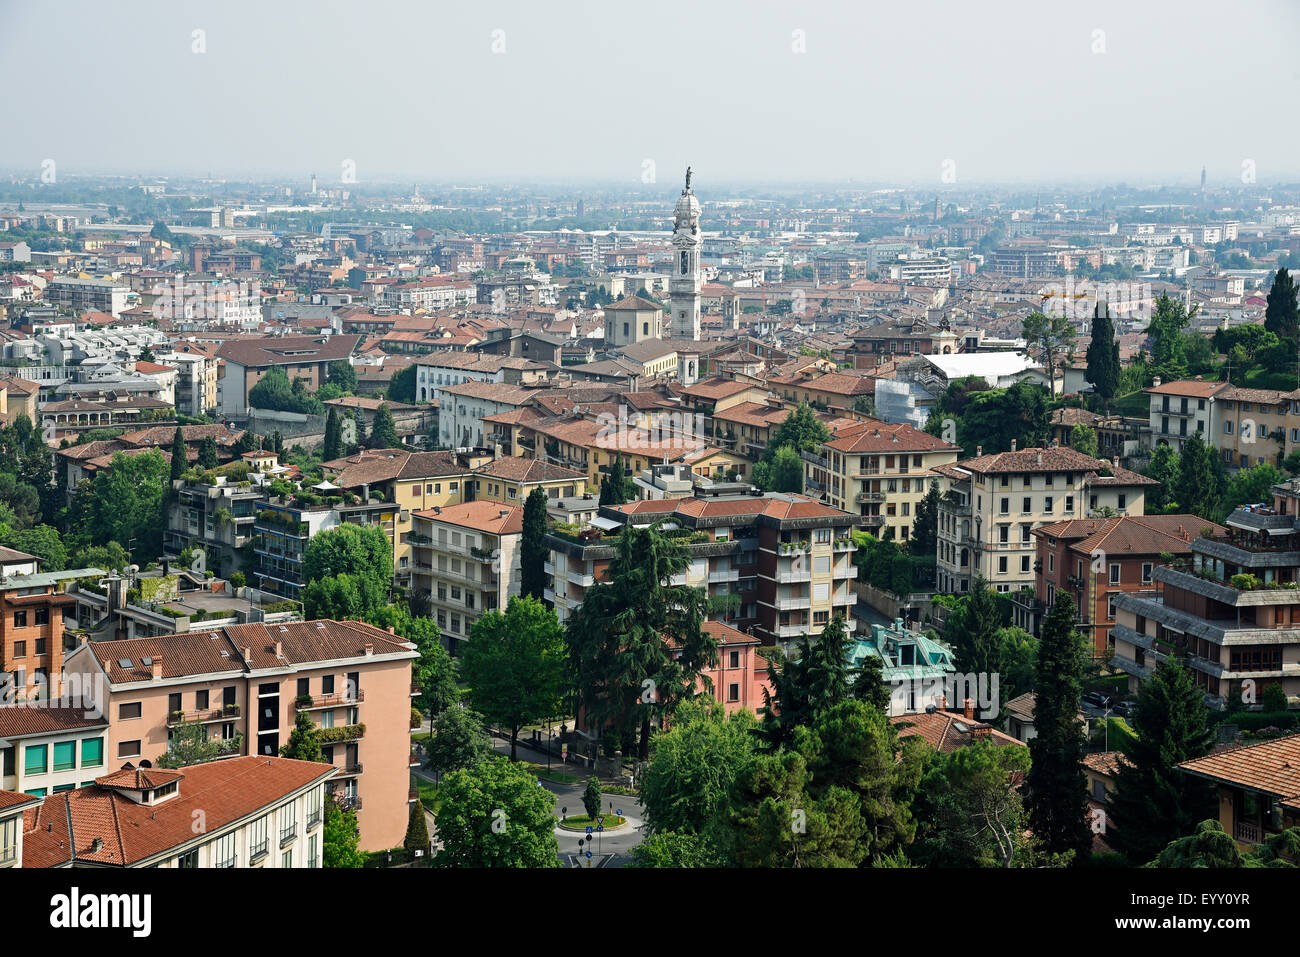 Cityscape, view of the lower town, Bergamo, Lombardy, Italy Stock Photo